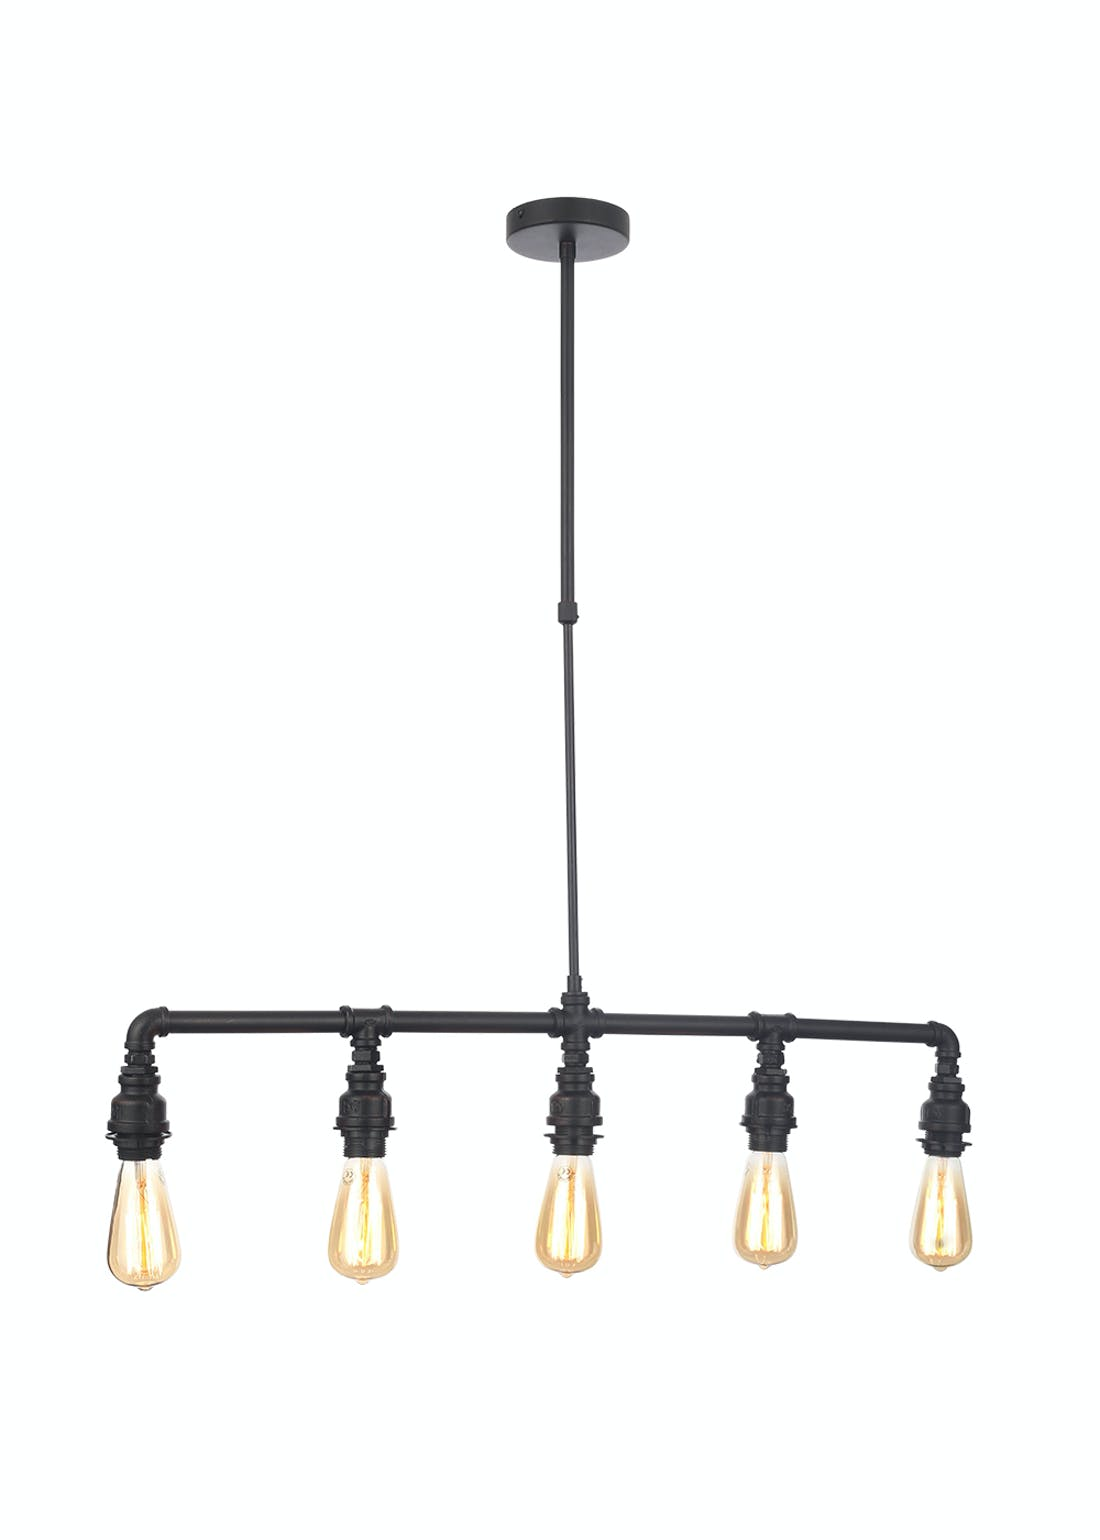 Inlight Quinn 5 Light Pipe Bar Diner Pendant (100cm x 83cm x 12cm)